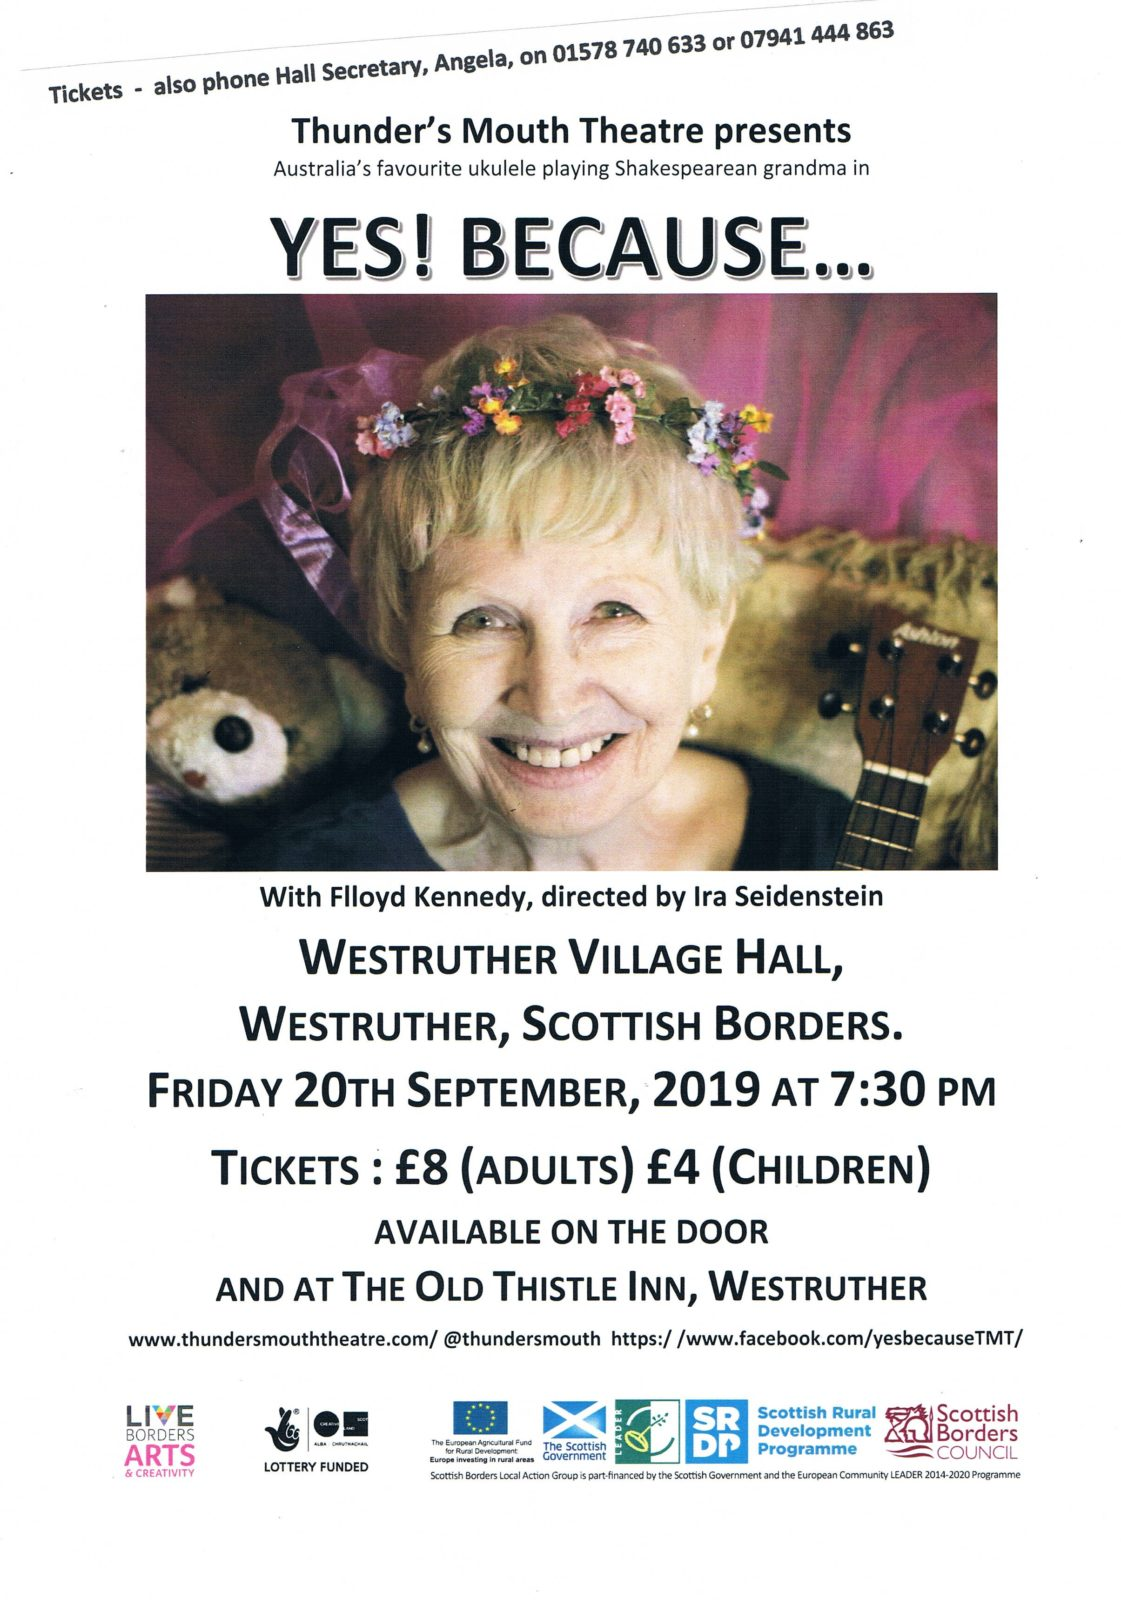 Theatre Production at Westruther Village Hall on 20 September